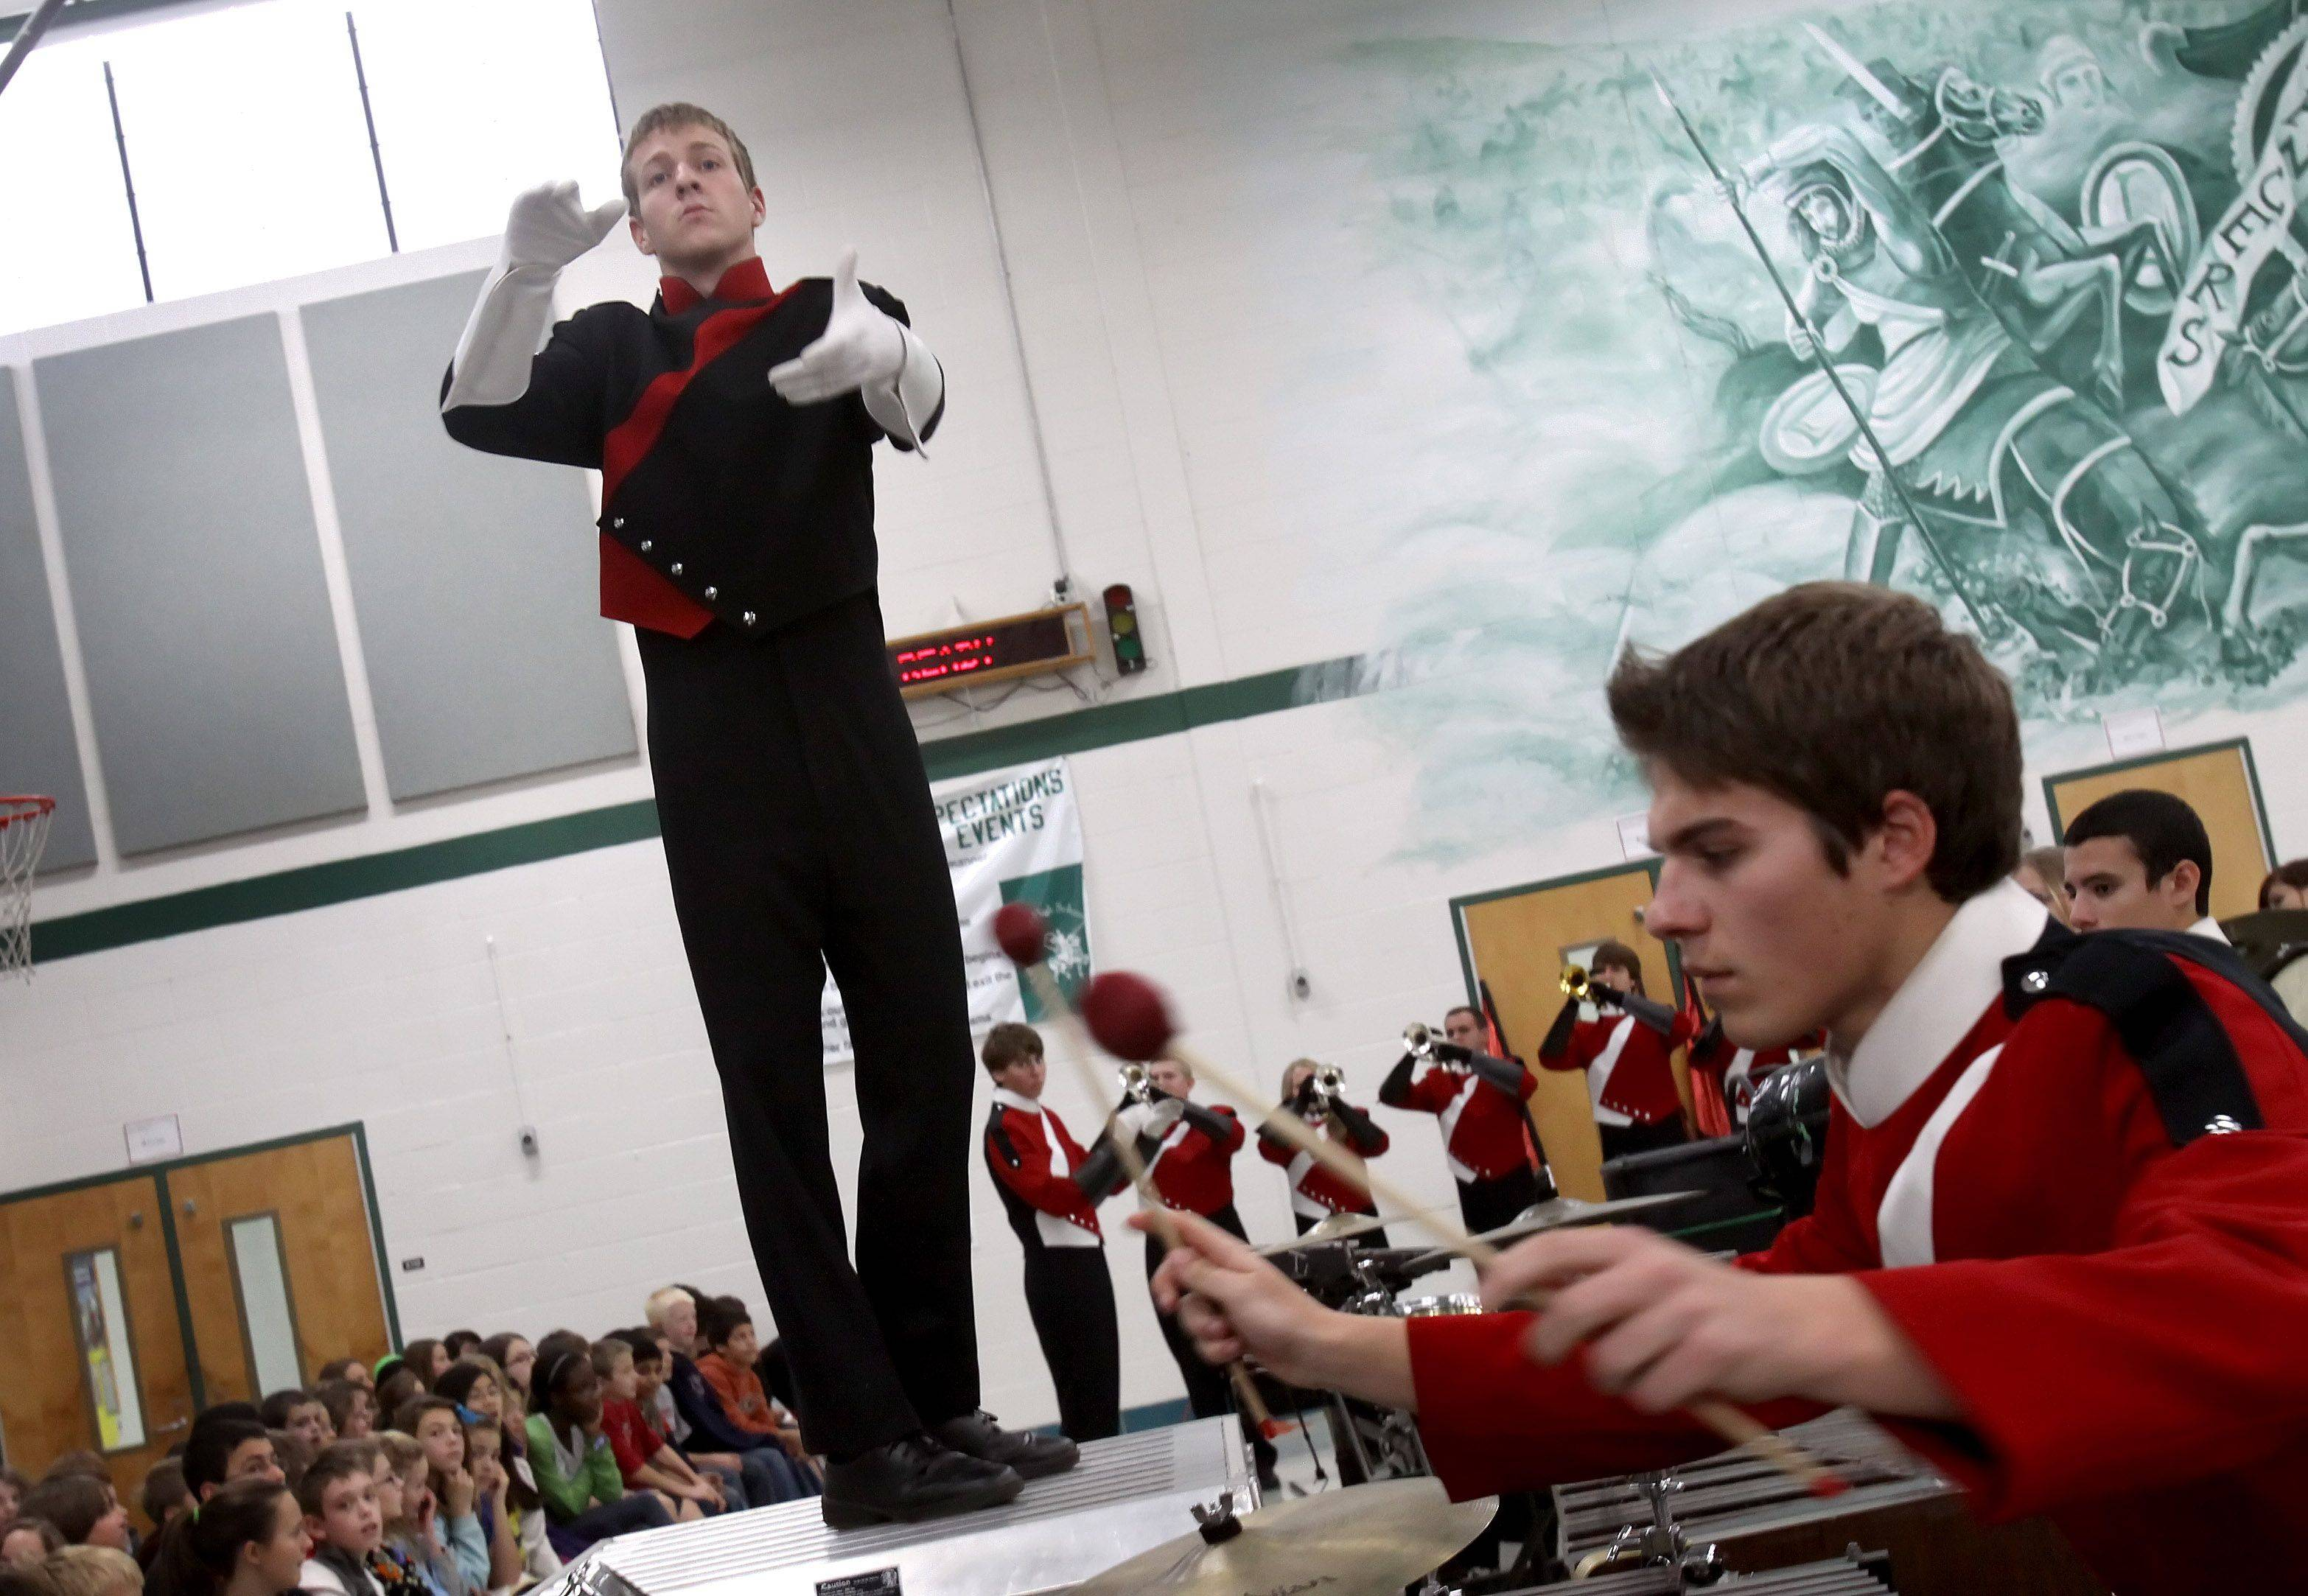 No seat at the kids table this year for Naperville Central senior Alex Reeder; he's leading the marching band in the Macy's Thanksgiving Day Parade.